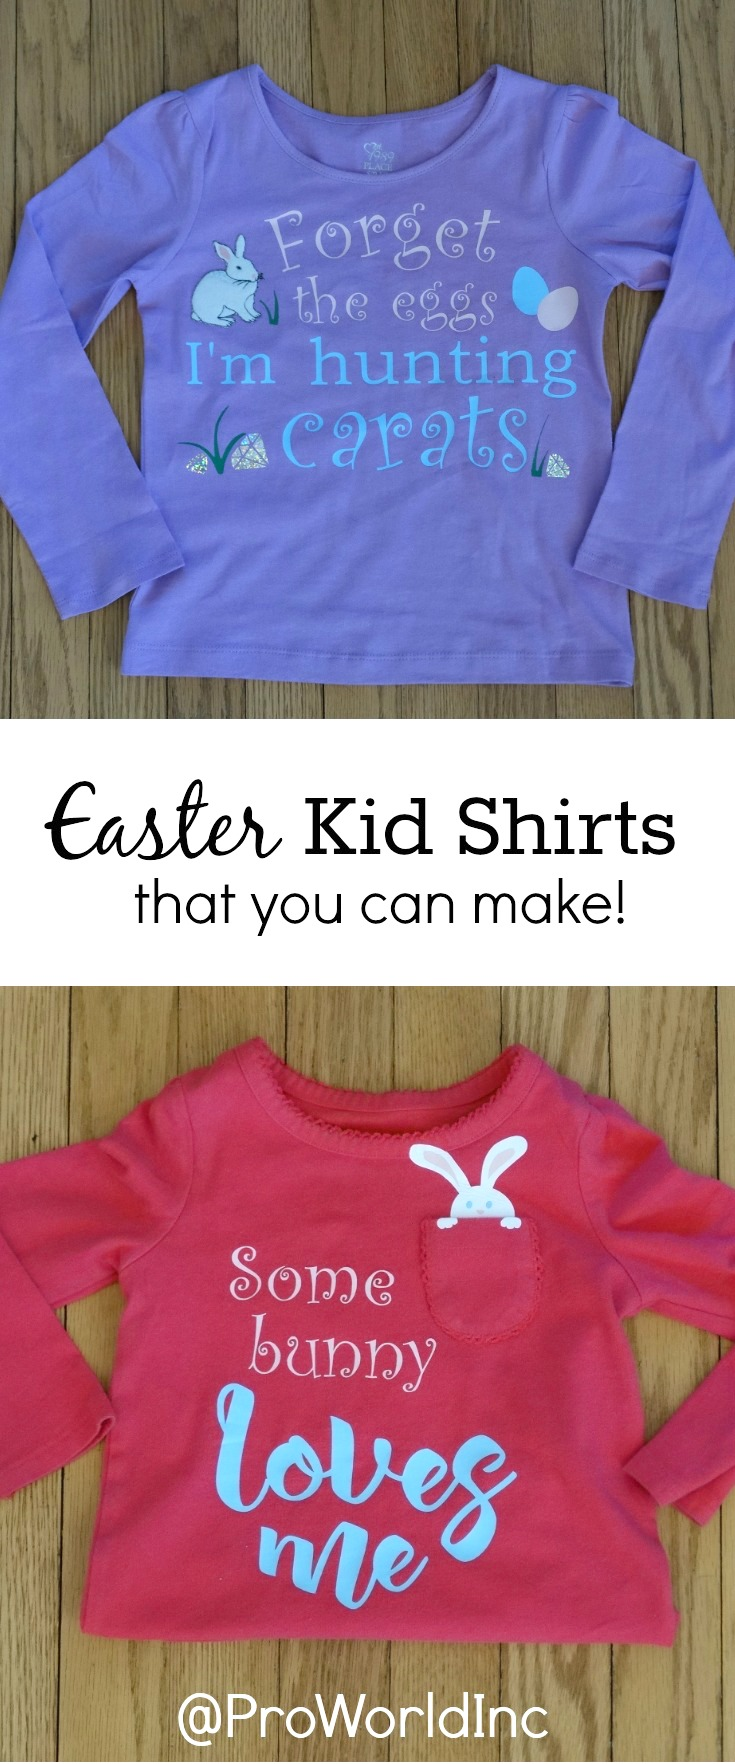 Make your own Easter kid shirts!